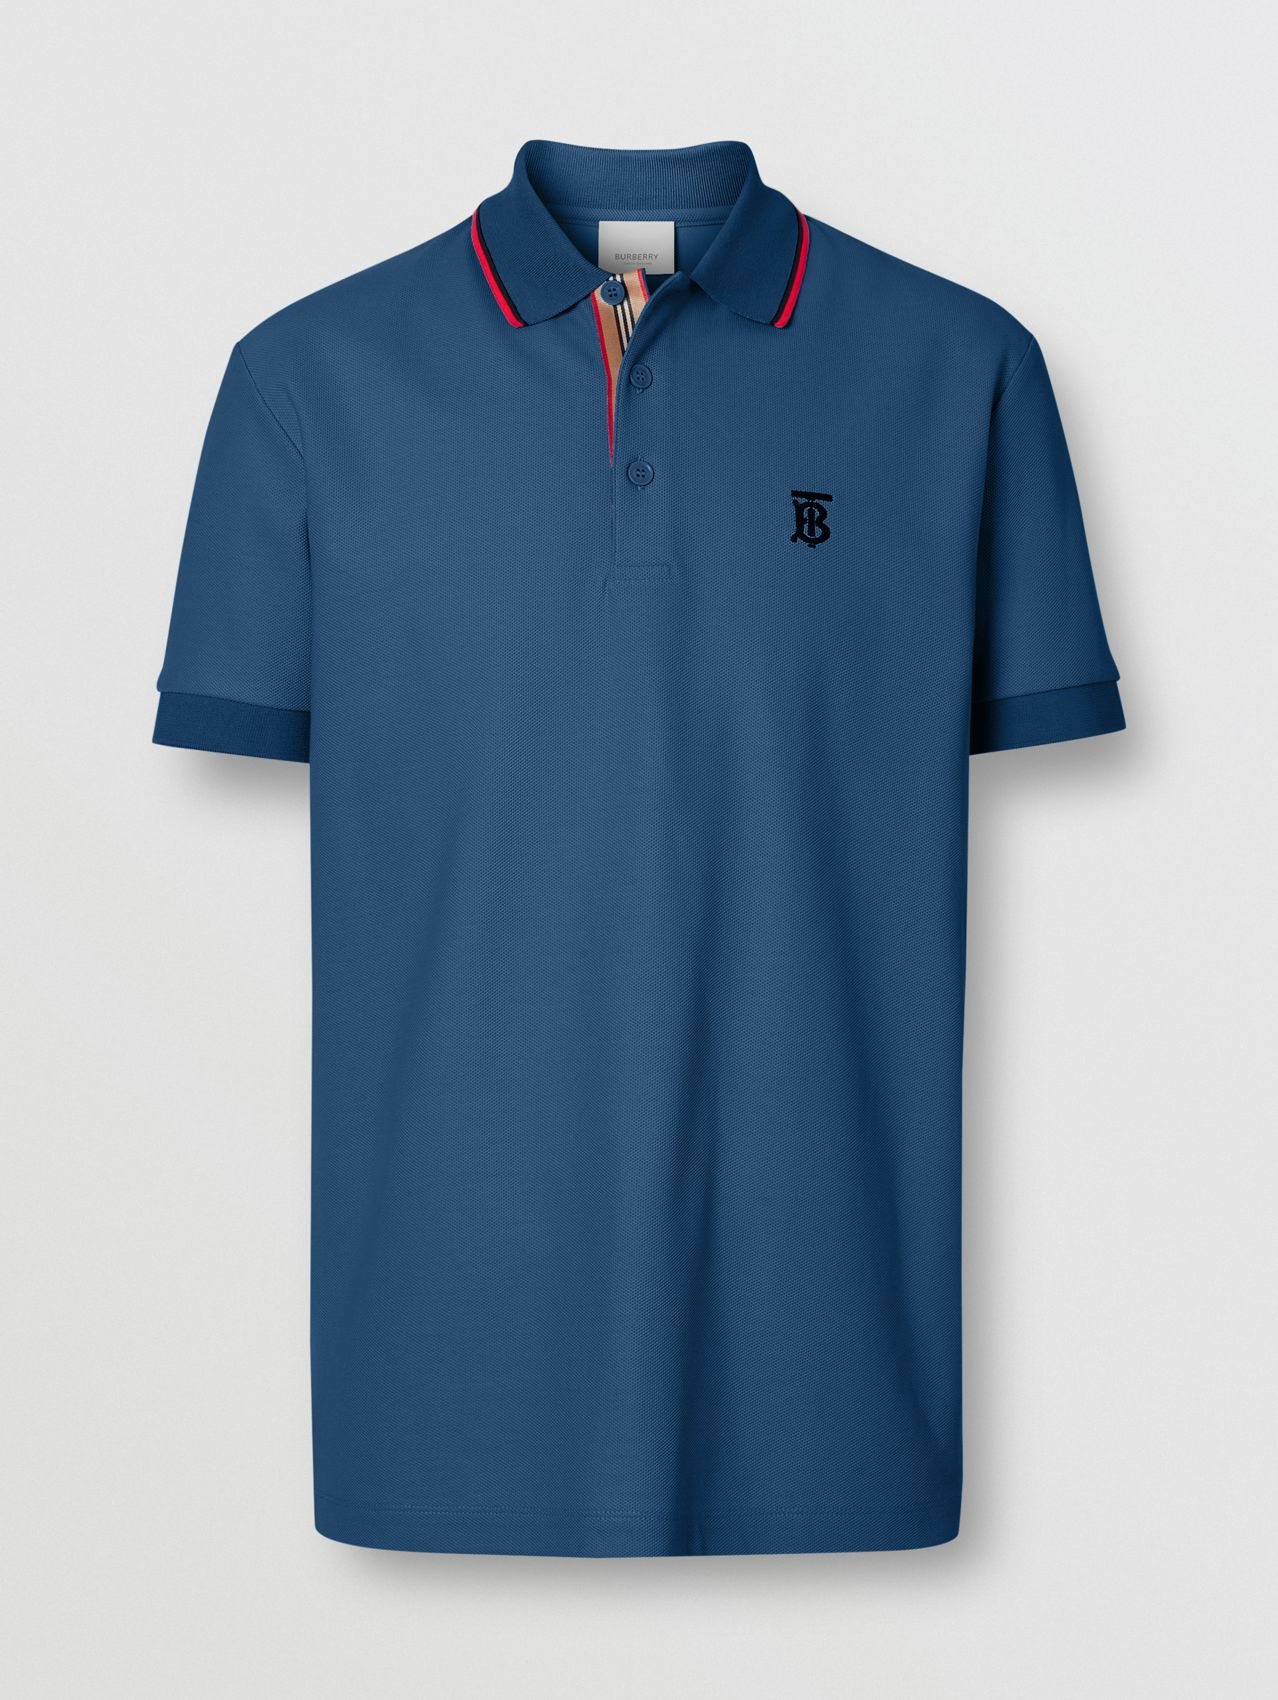 Monogram Motif Cotton Piqué Polo Shirt in Dark Cerulean Blue